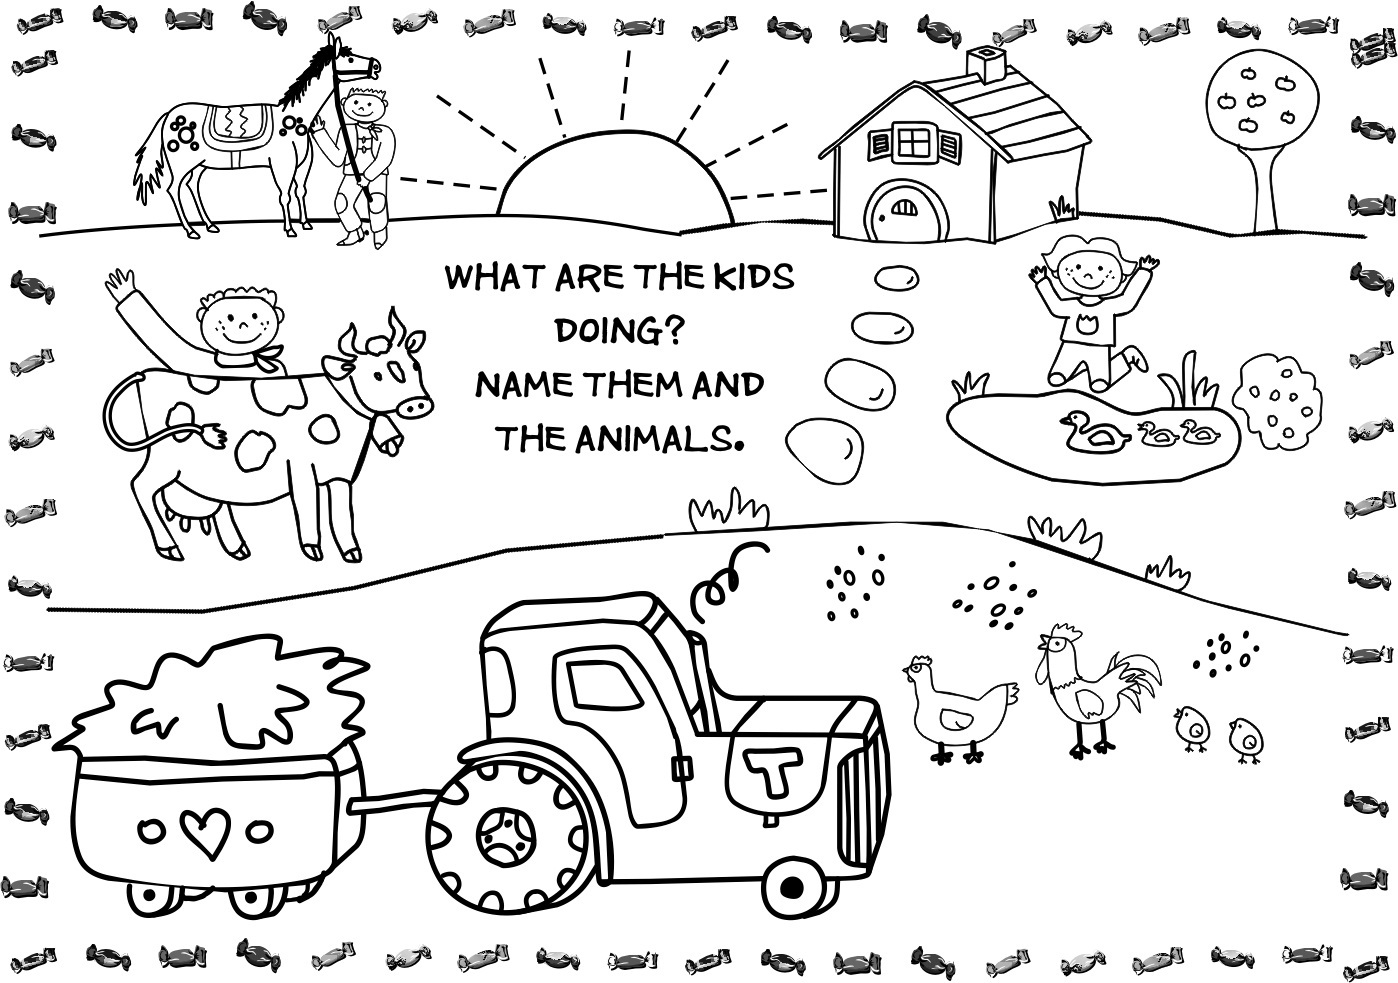 Printable coloring pages with animals - Coloring Pages Farm Animals